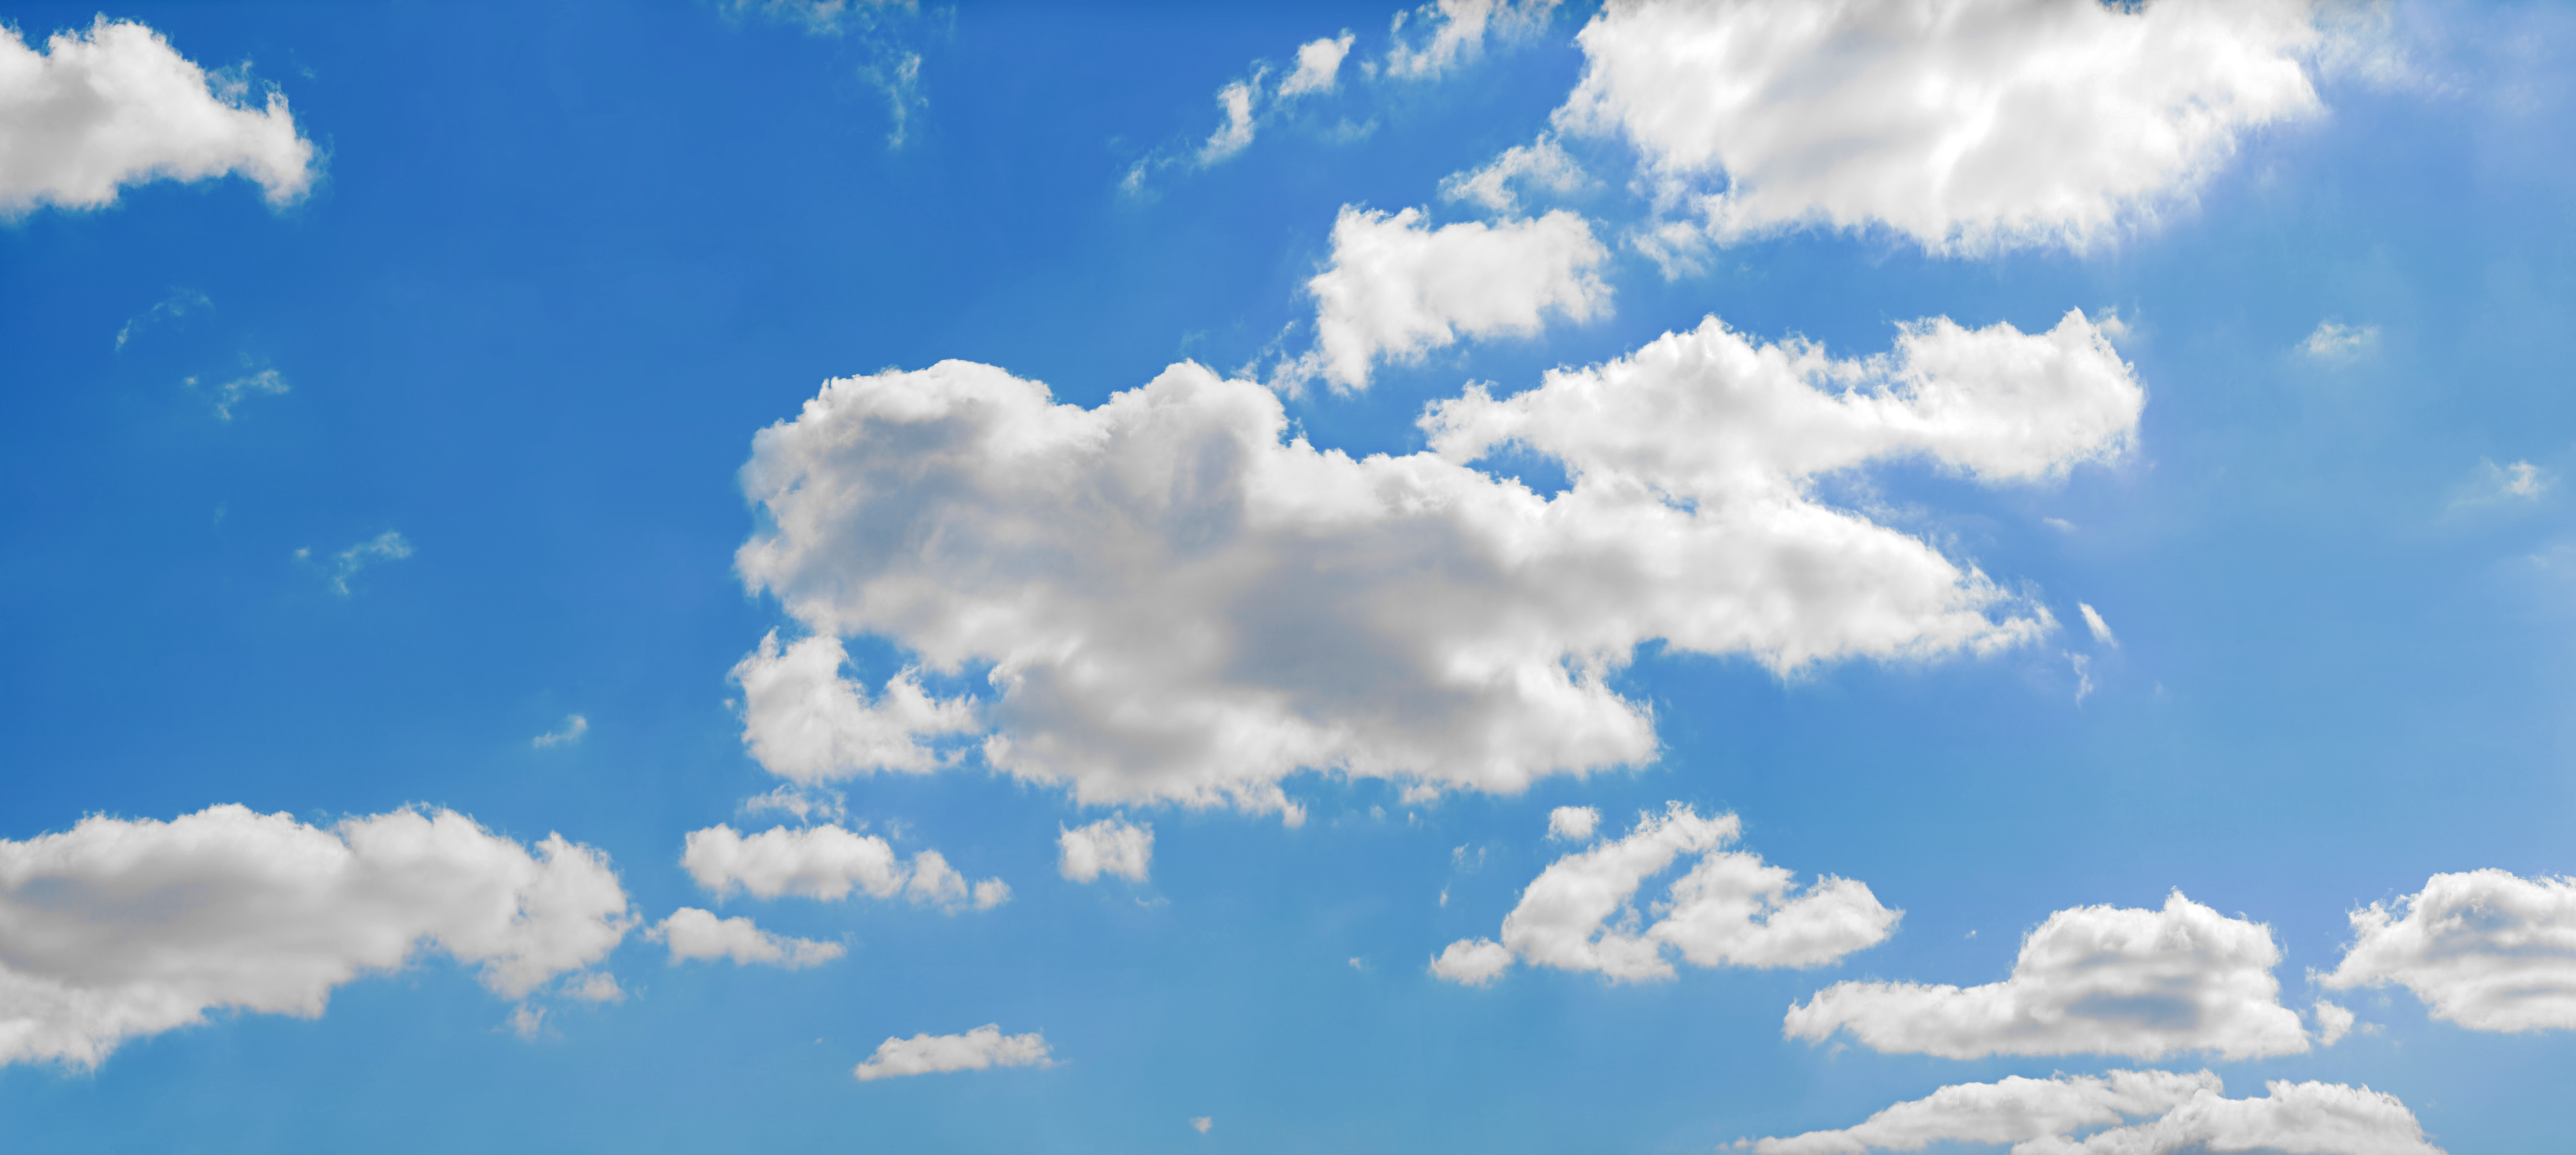 Bright Sky with Clouds, Clouds, Sky, Cloud, Bright, HQ Photo